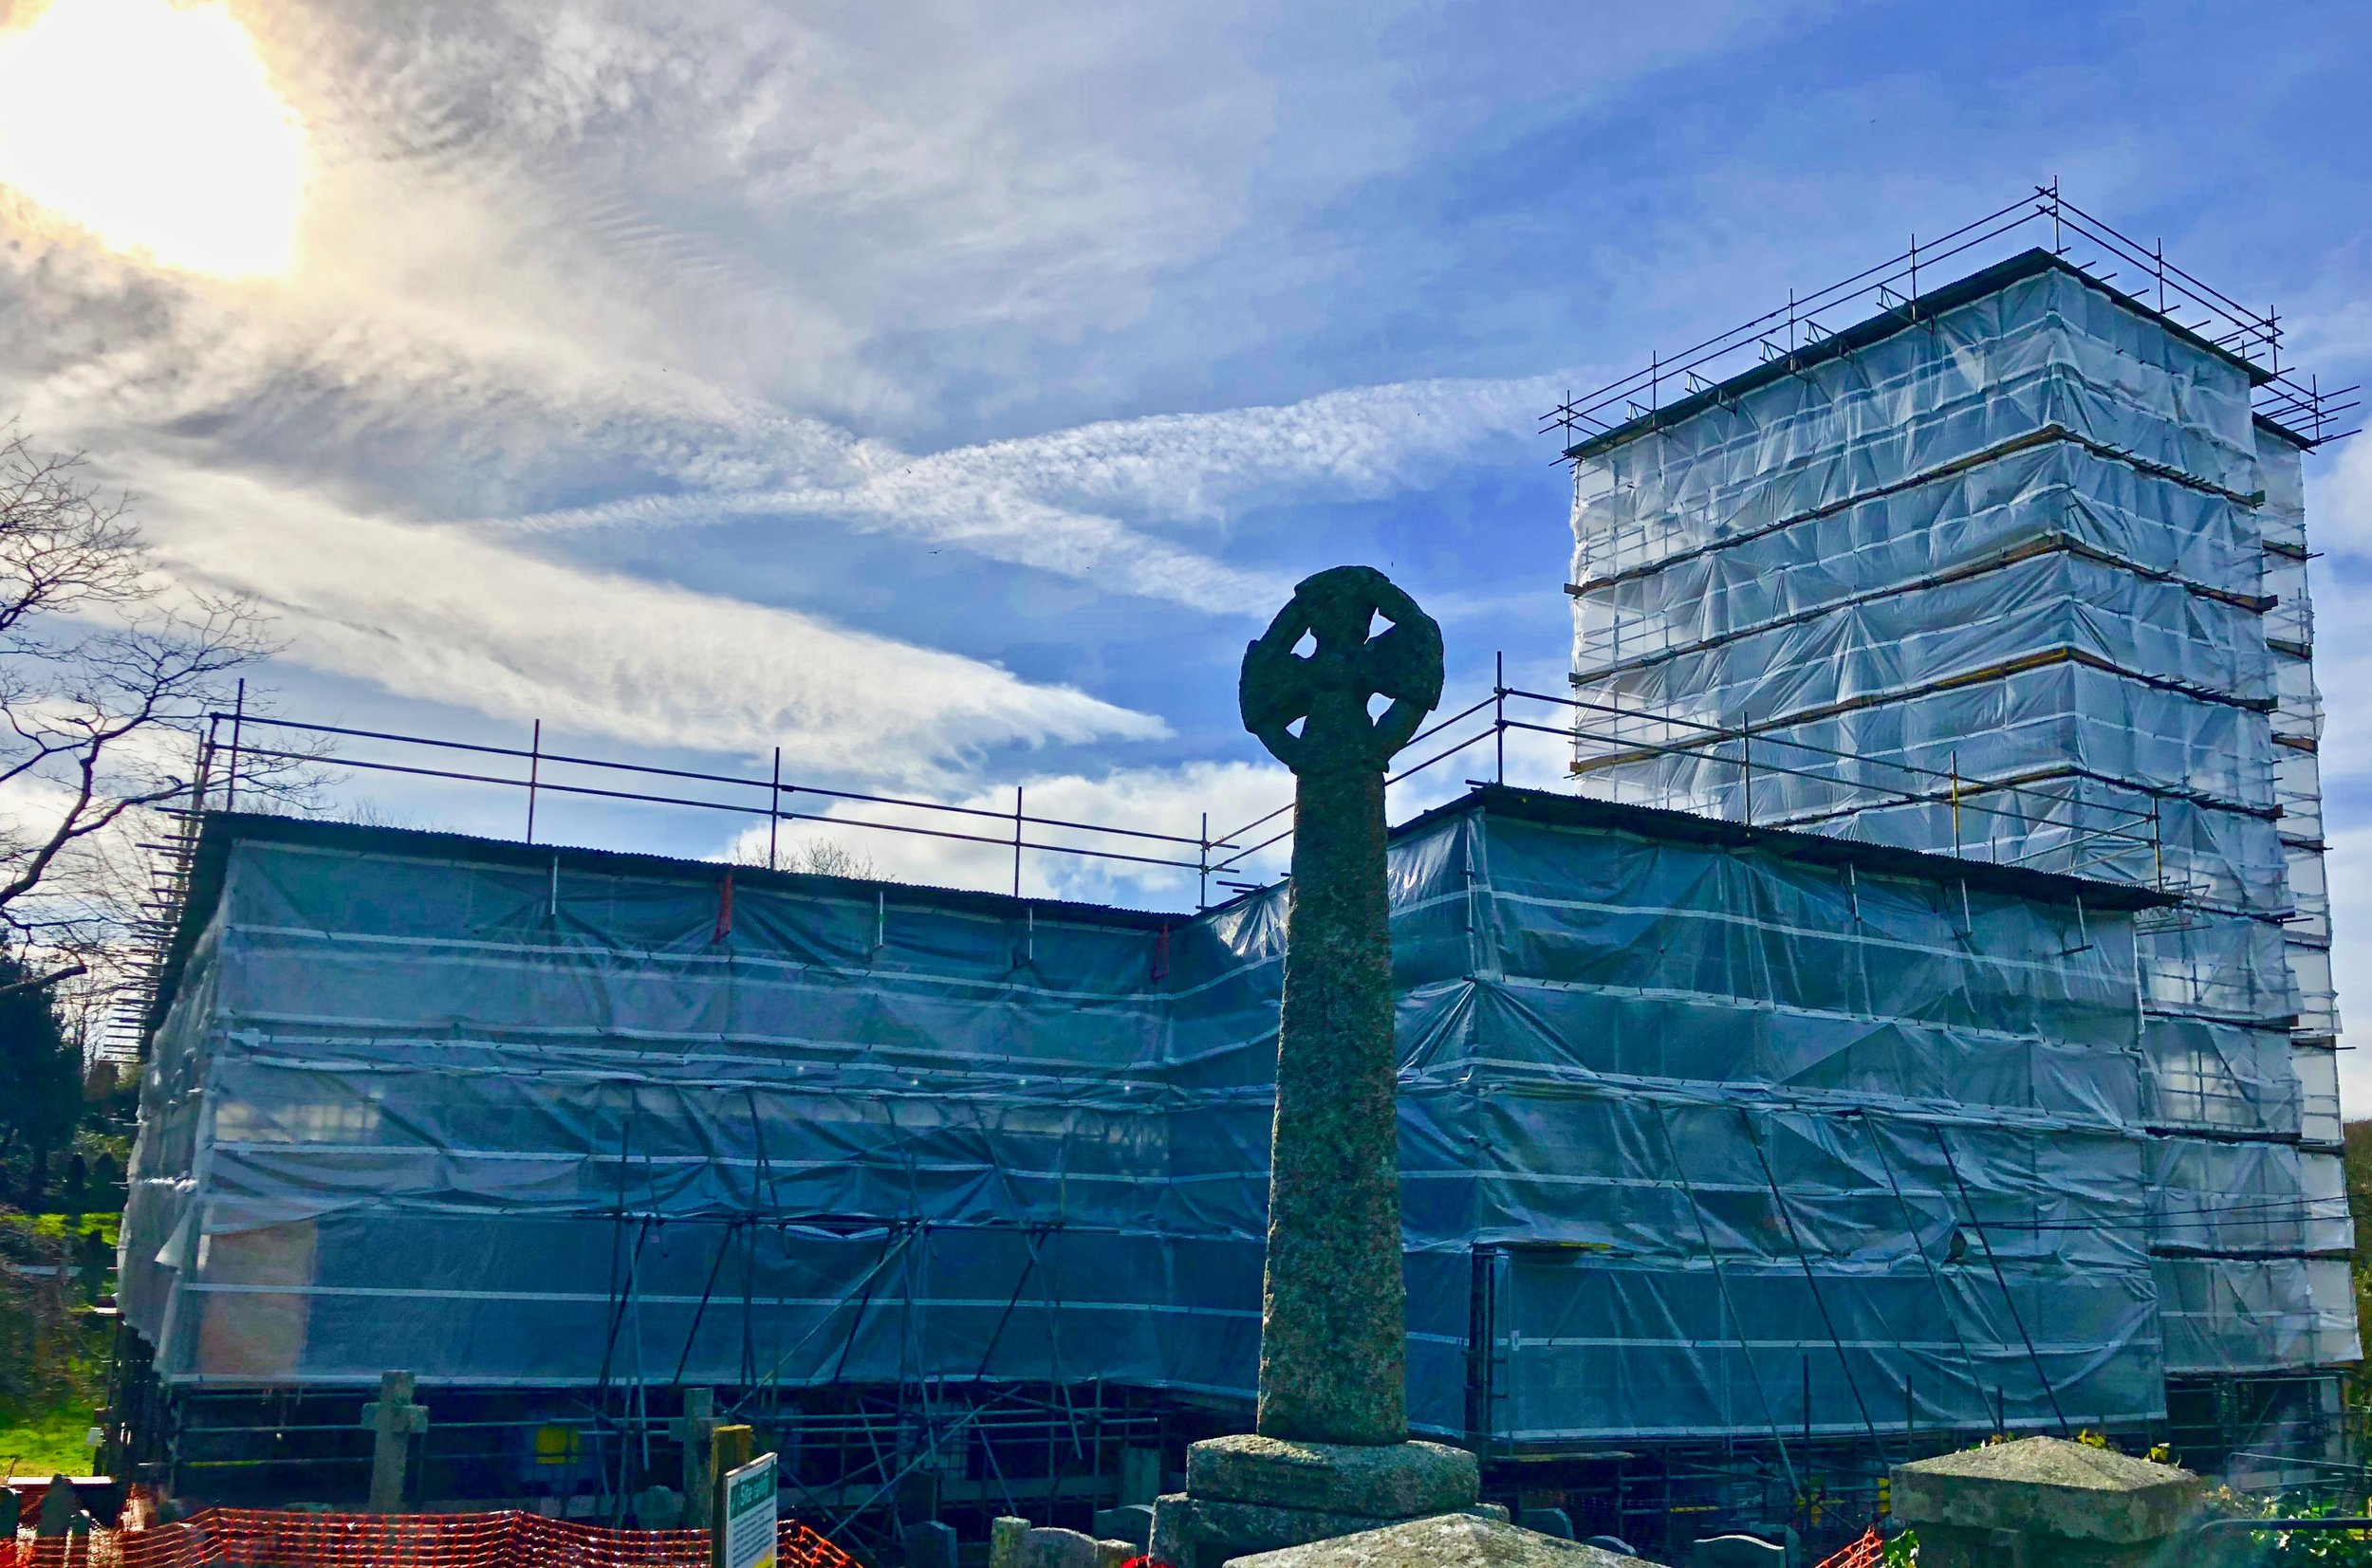 all safely covered up and ready for the restoration to start February 2019